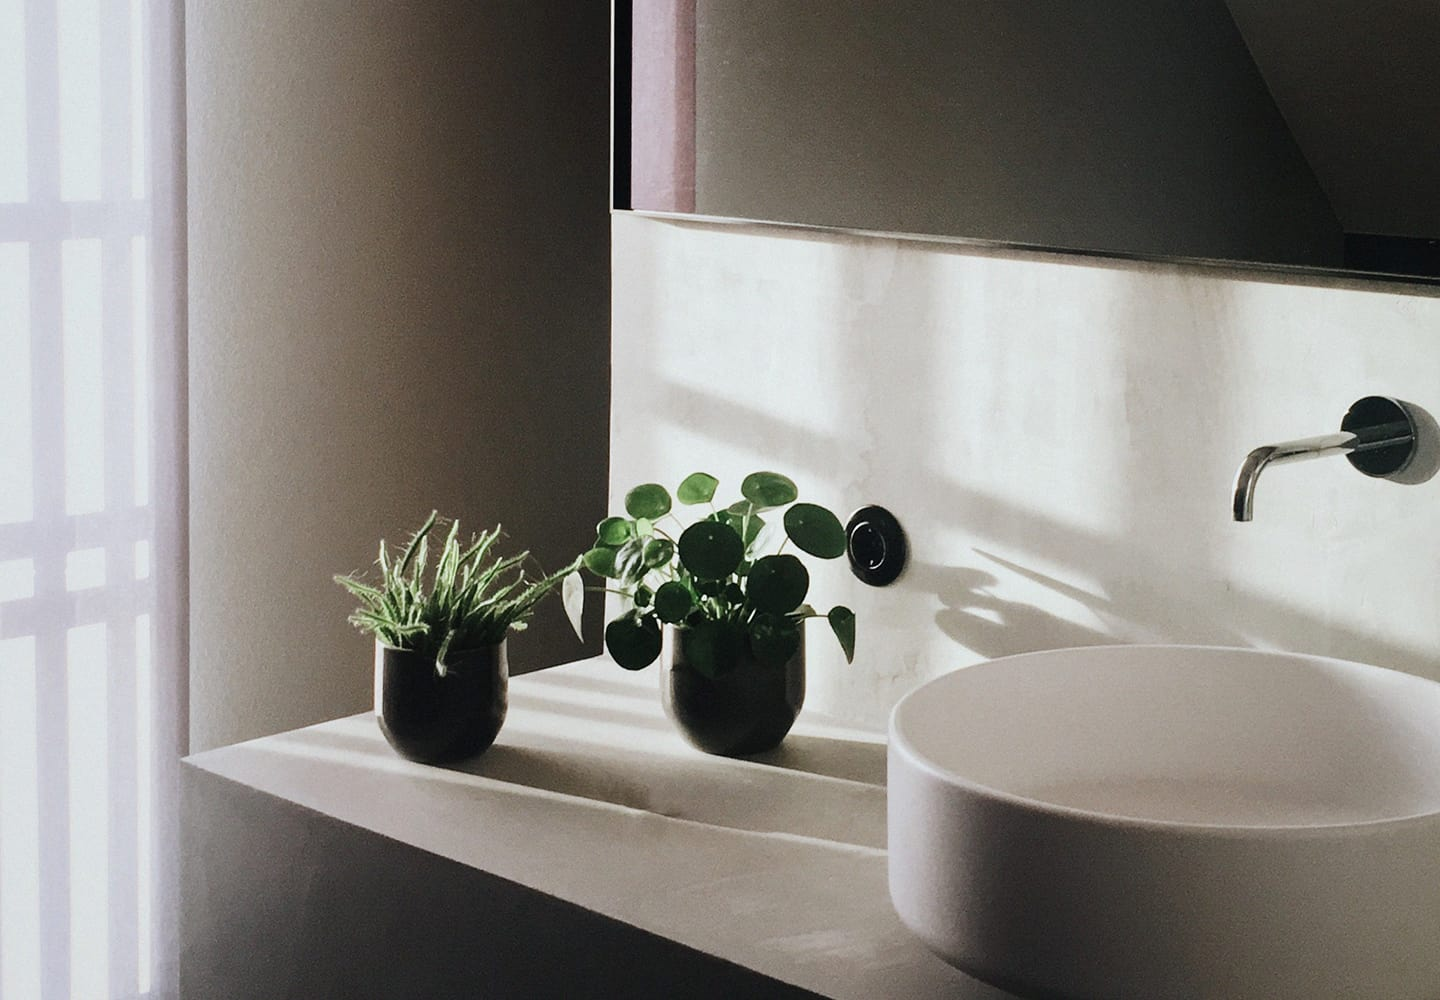 Soft lit bathroom counter and sink featuring small plants